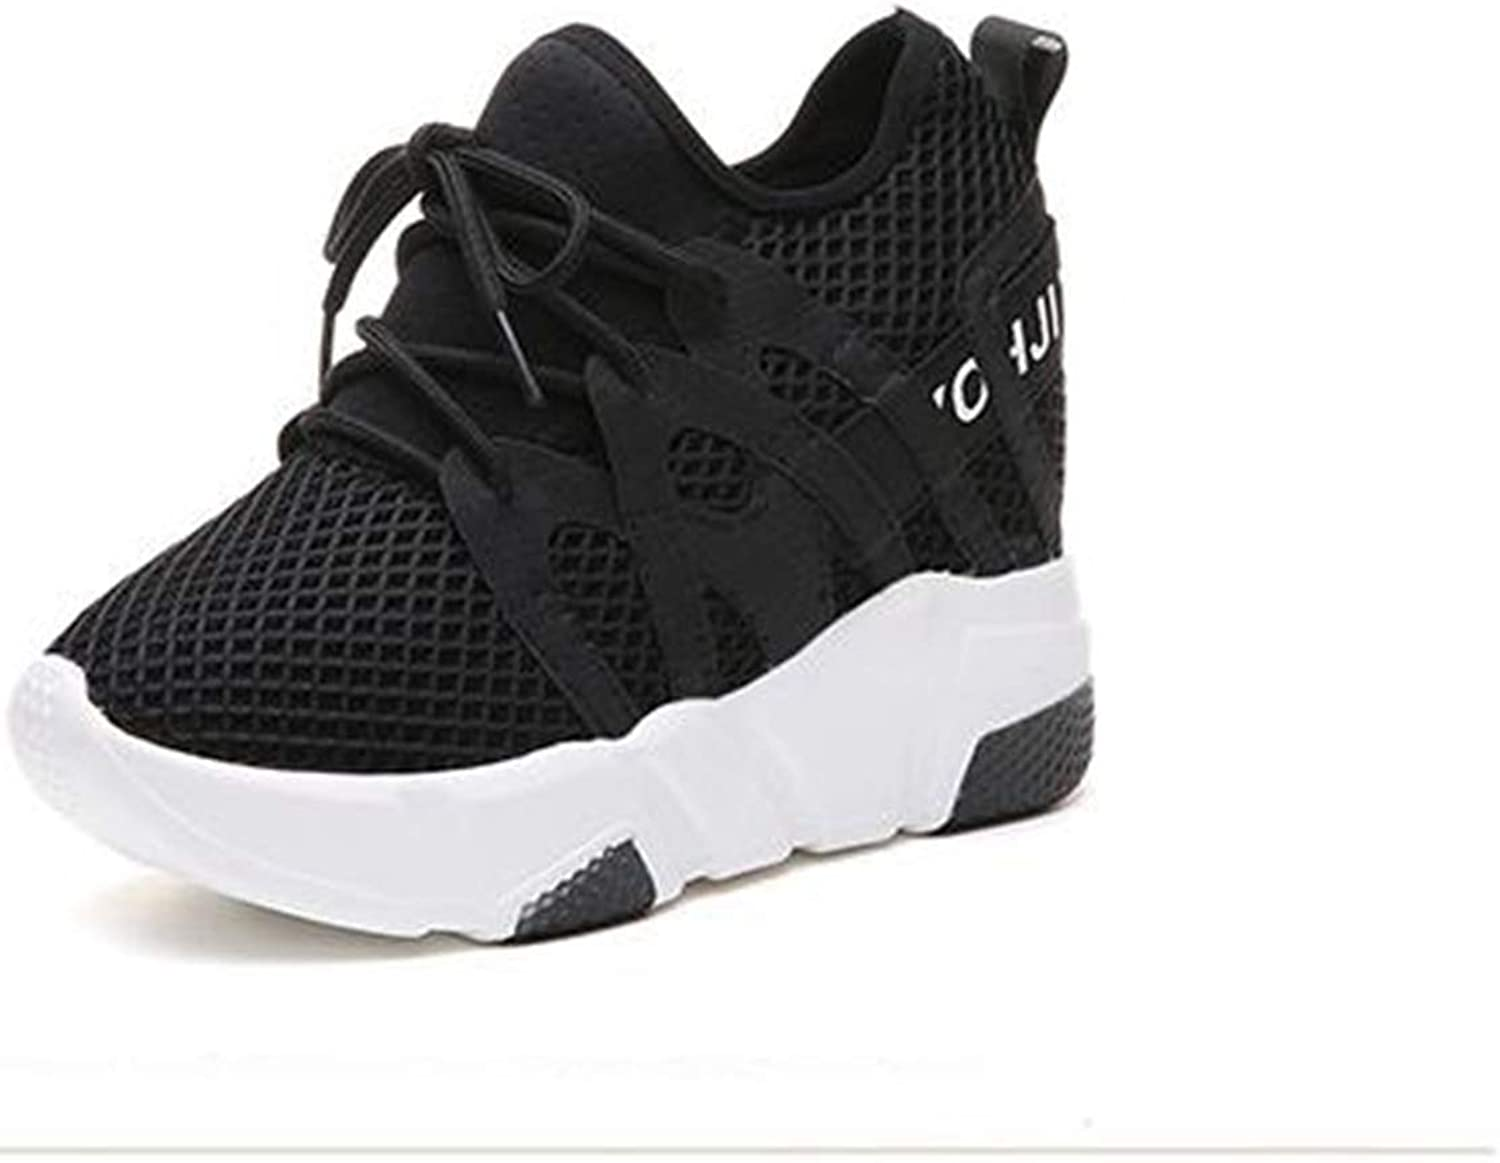 T-JULY Women's Fashion Increases Casual shoes Femael Network Air Wedge Airplane shoes